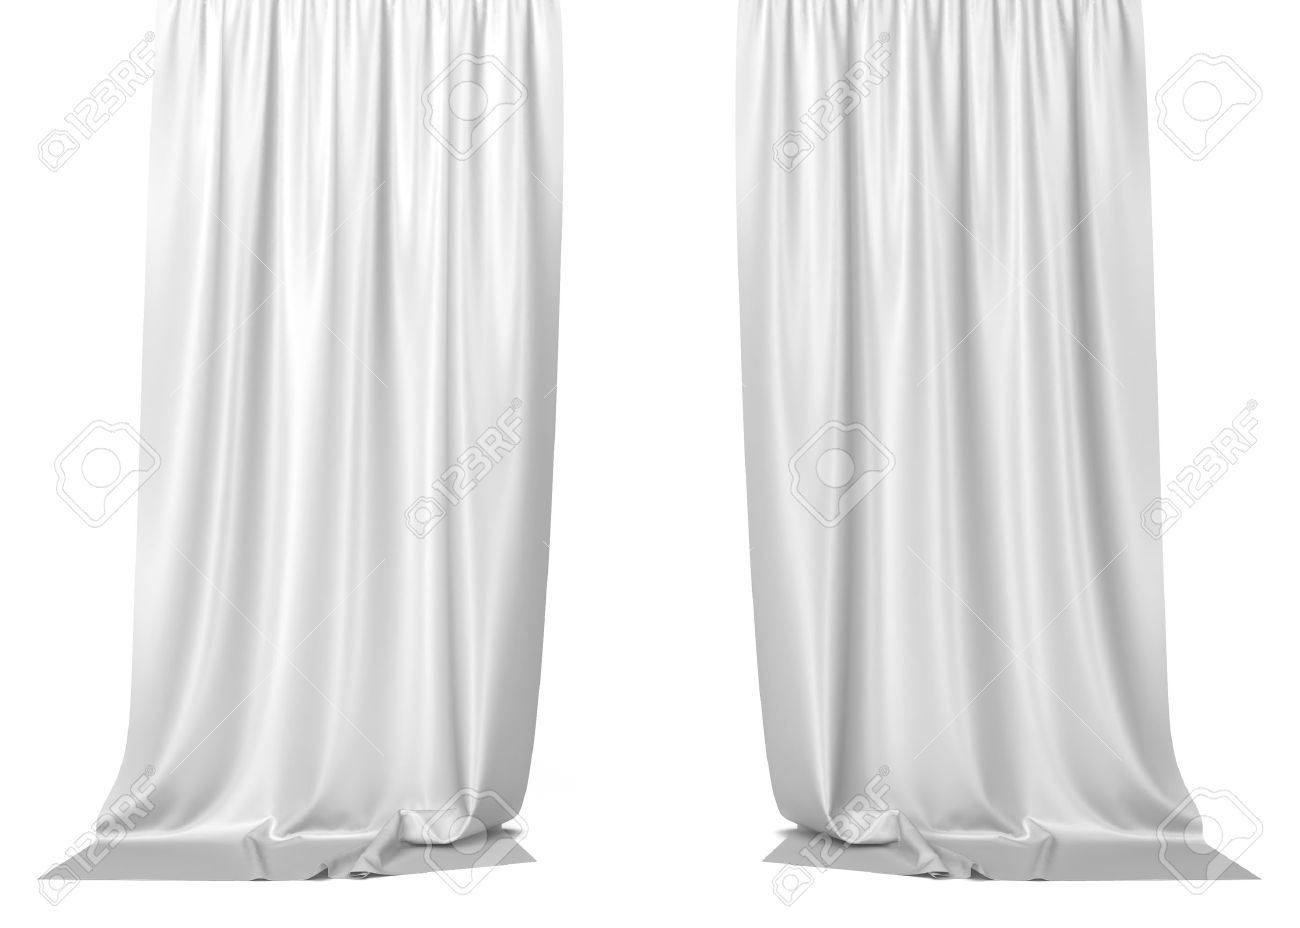 Royalty free or white curtain background drapes royalty free stock - White Curtains 3d Illustration Isolated On White Background Stock Illustration 48560239